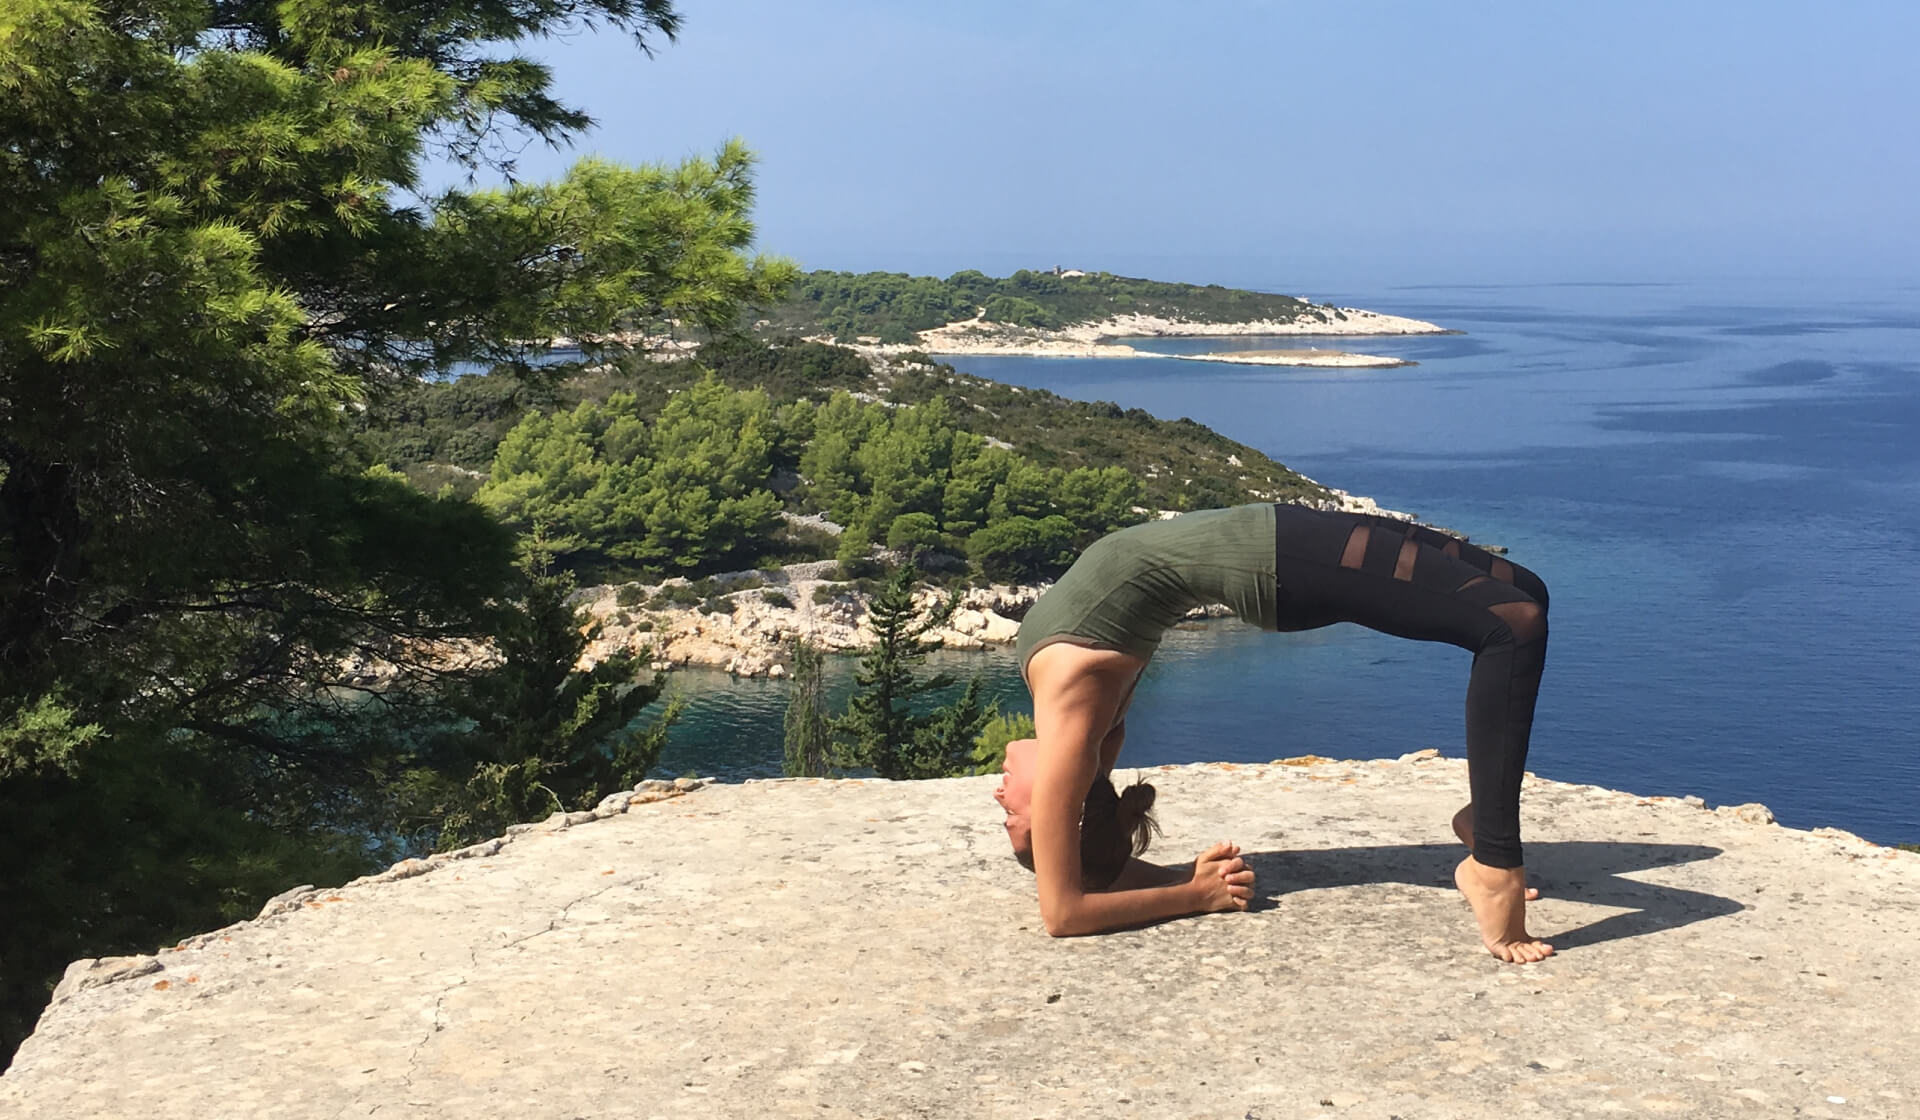 Woman yoga teacher in black pants and a green tank practicing a deep backbend in front of an ocean view and trees